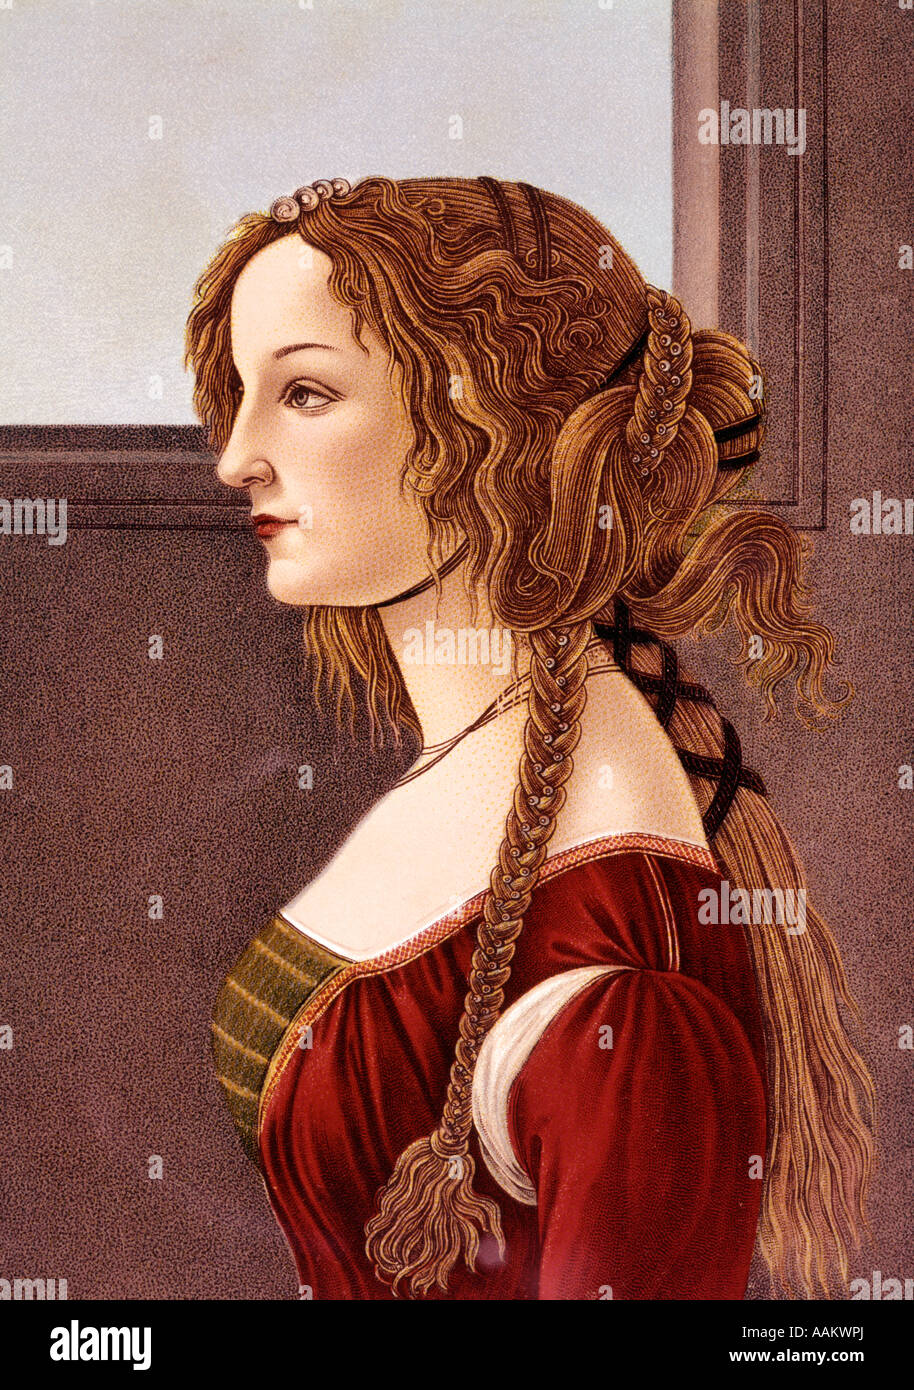 PORTRAIT OF YOUNG WOMAN BY BOTTICELLI PROFILE 15TH CENTURY RENAISSANCE WOMAN RED DRESS ELABORATE LONG HAIR TRESSES - Stock Image